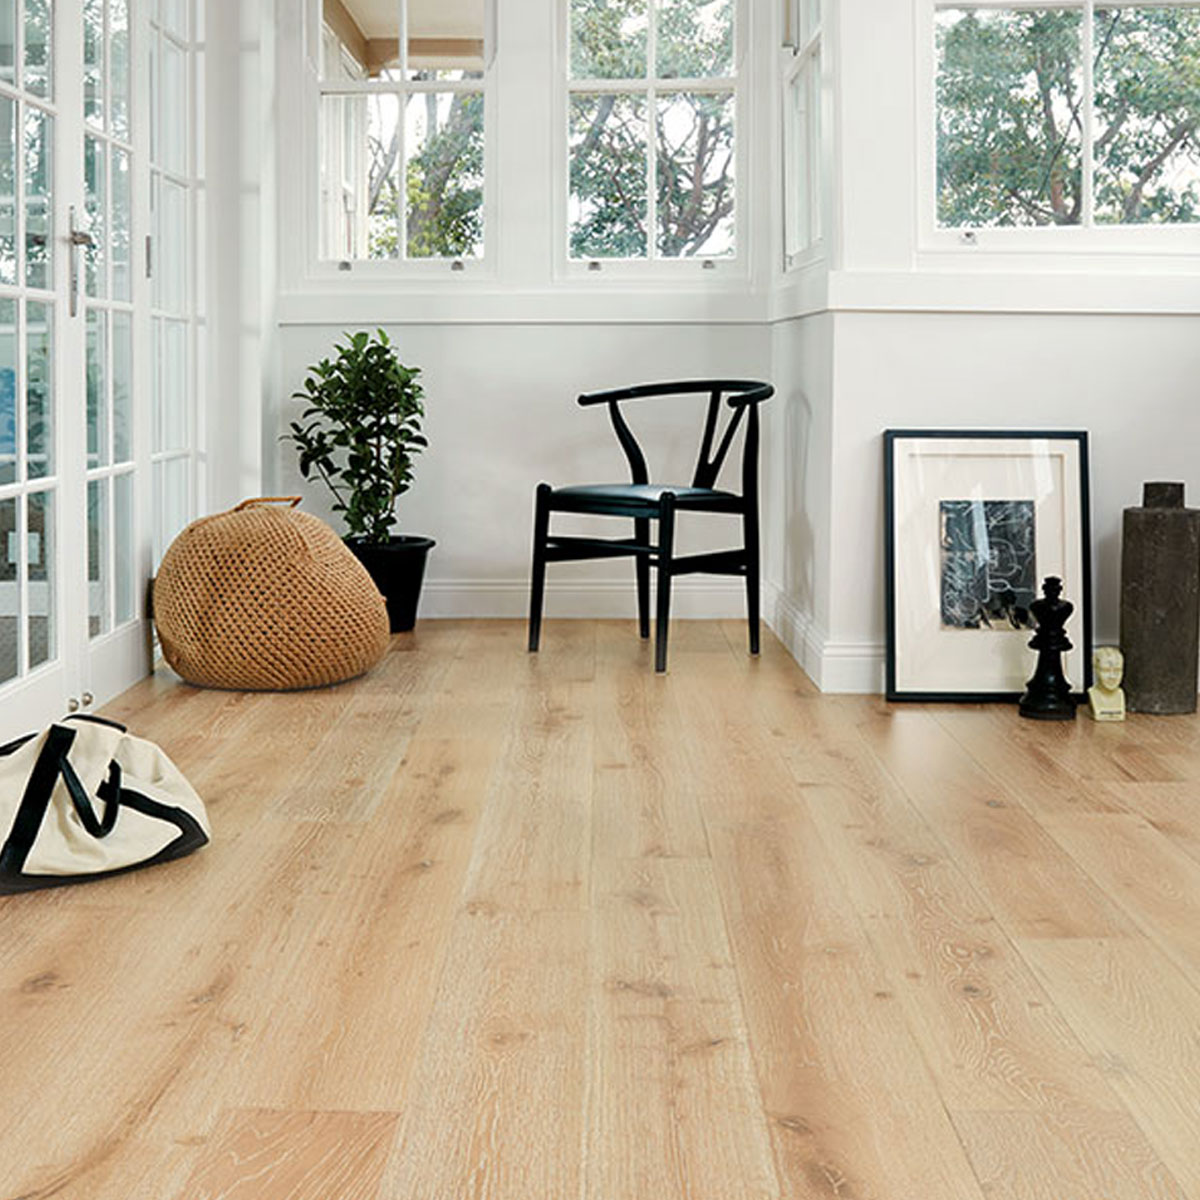 Prestige Oak - Limewash - 15mm Engineered Timber Flooring - Stone3 Brisbane